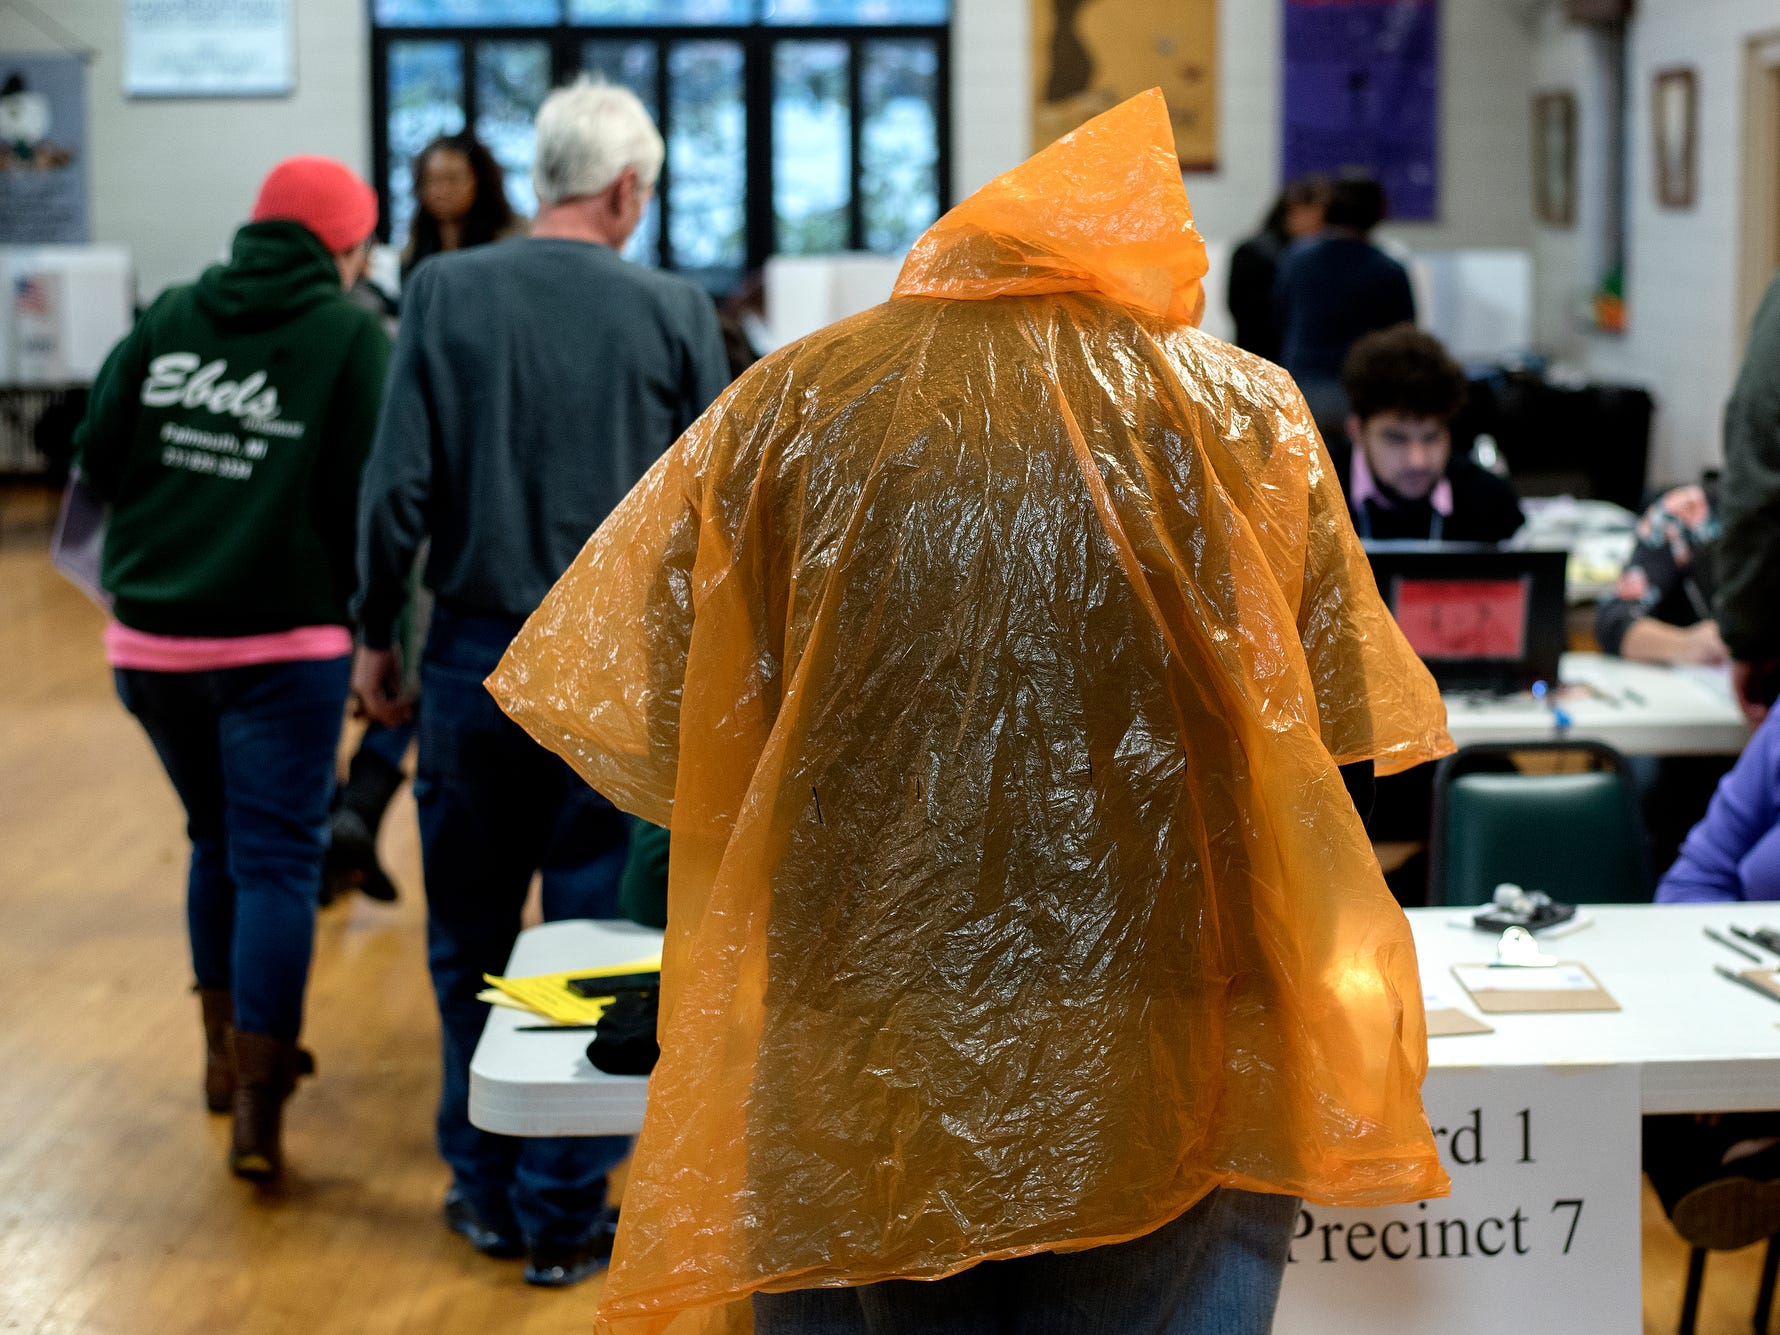 A voter wears a poncho after coming in from the rain to cast his ballot on Tuesday, Nov. 6, 2018, at Pilgrim Congregational United Church of Christ in Lansing.